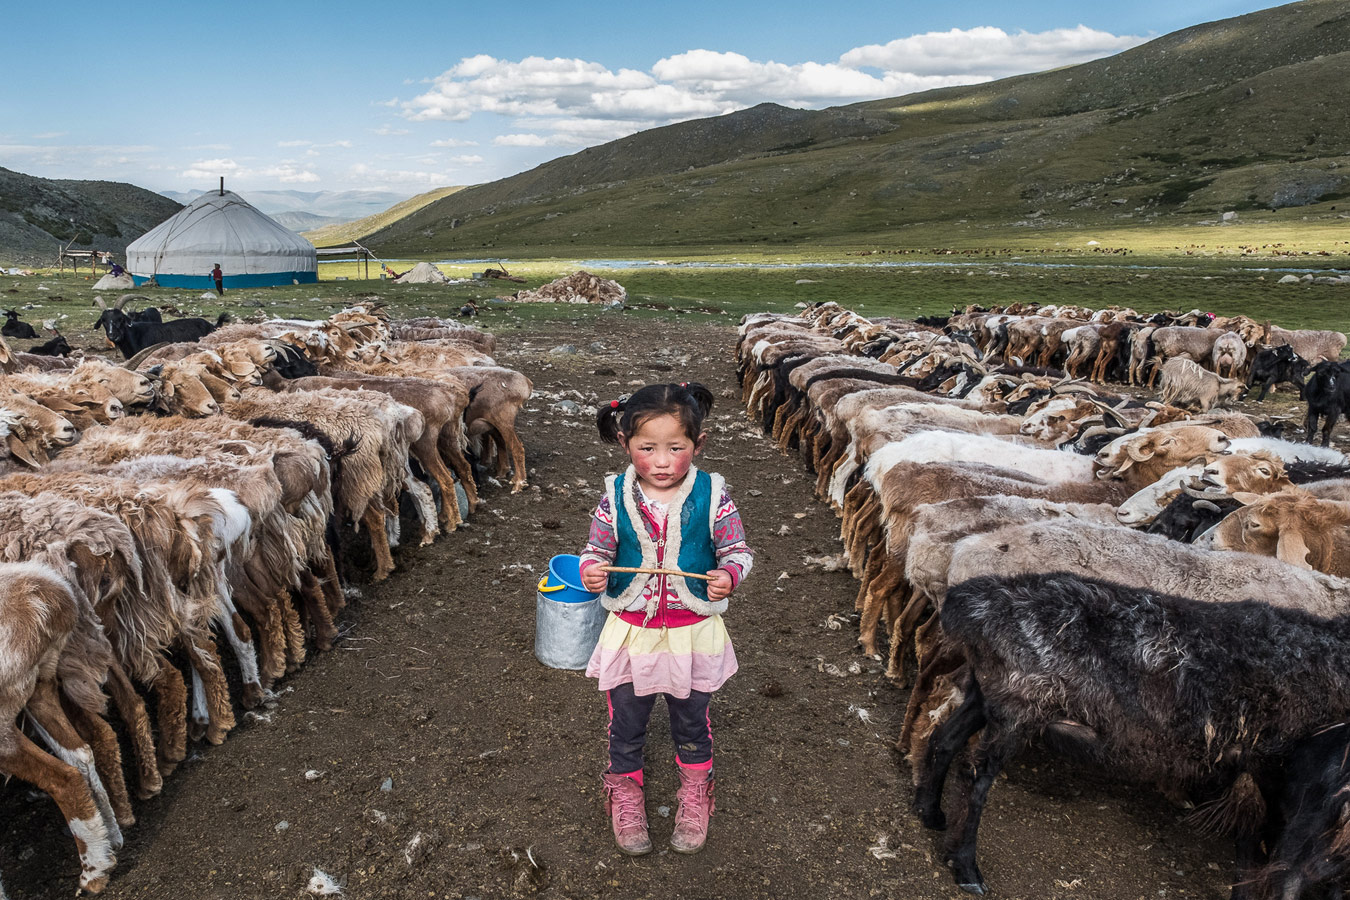 Among The Sheep, © France Leclerc, Chicago, IL, United States, Amateur : Travel Portraits, World In Focus - The Ultimate Travel Photography Competition